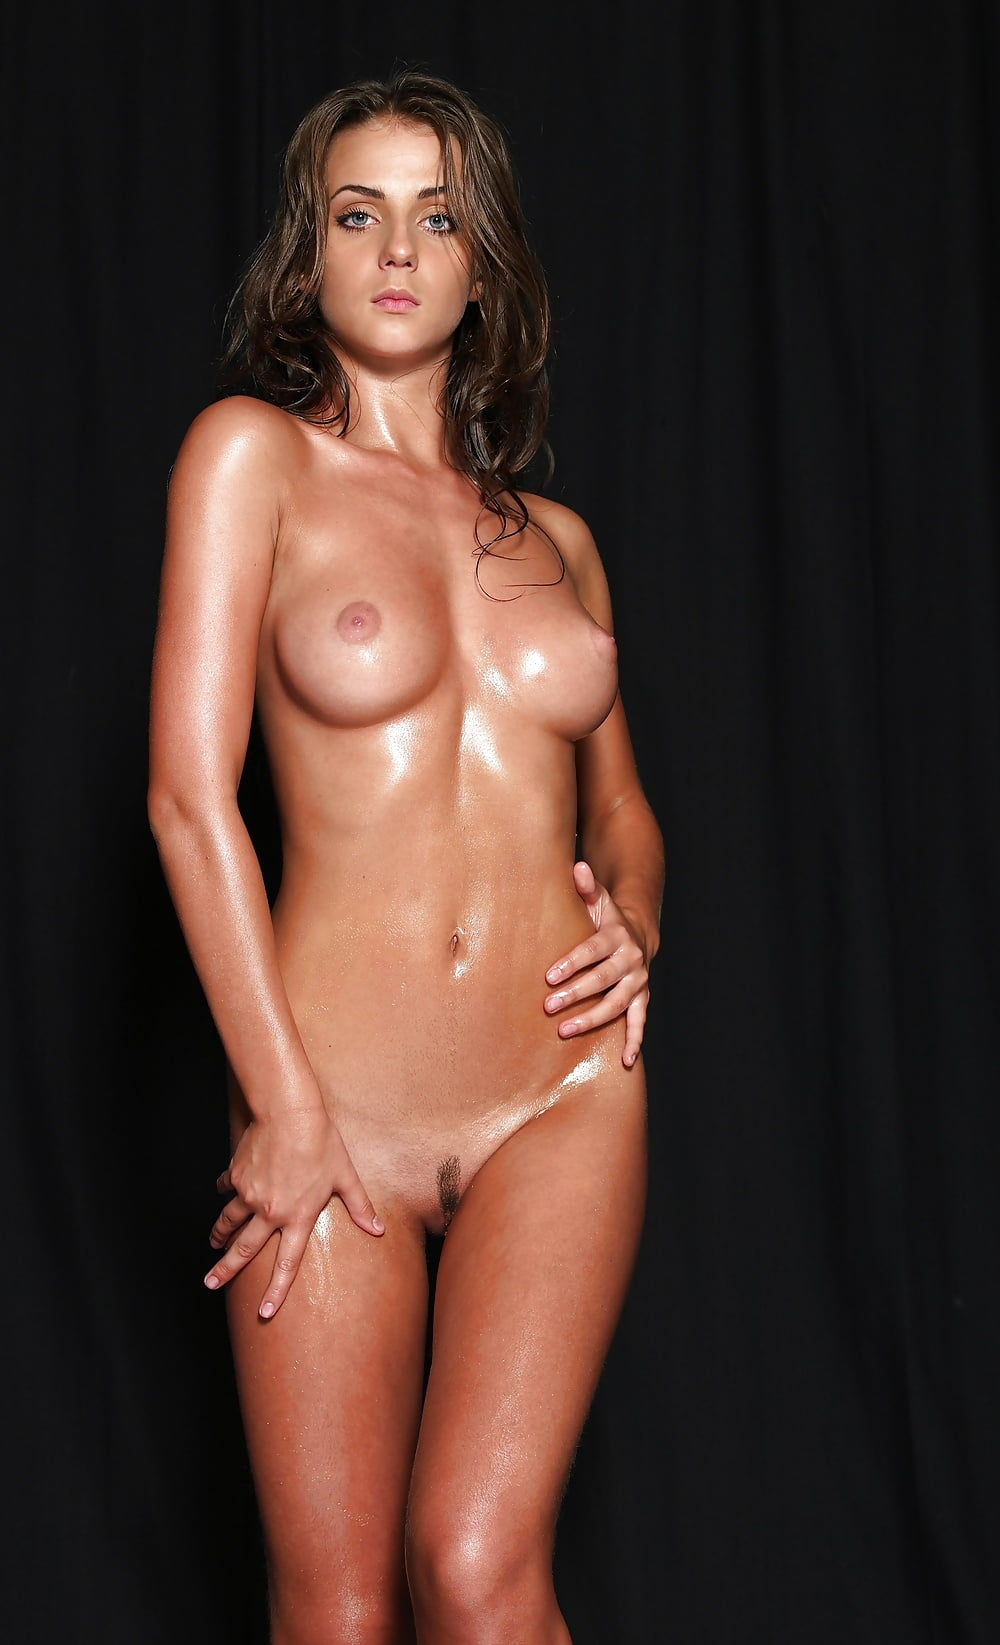 South African Celebs Nude